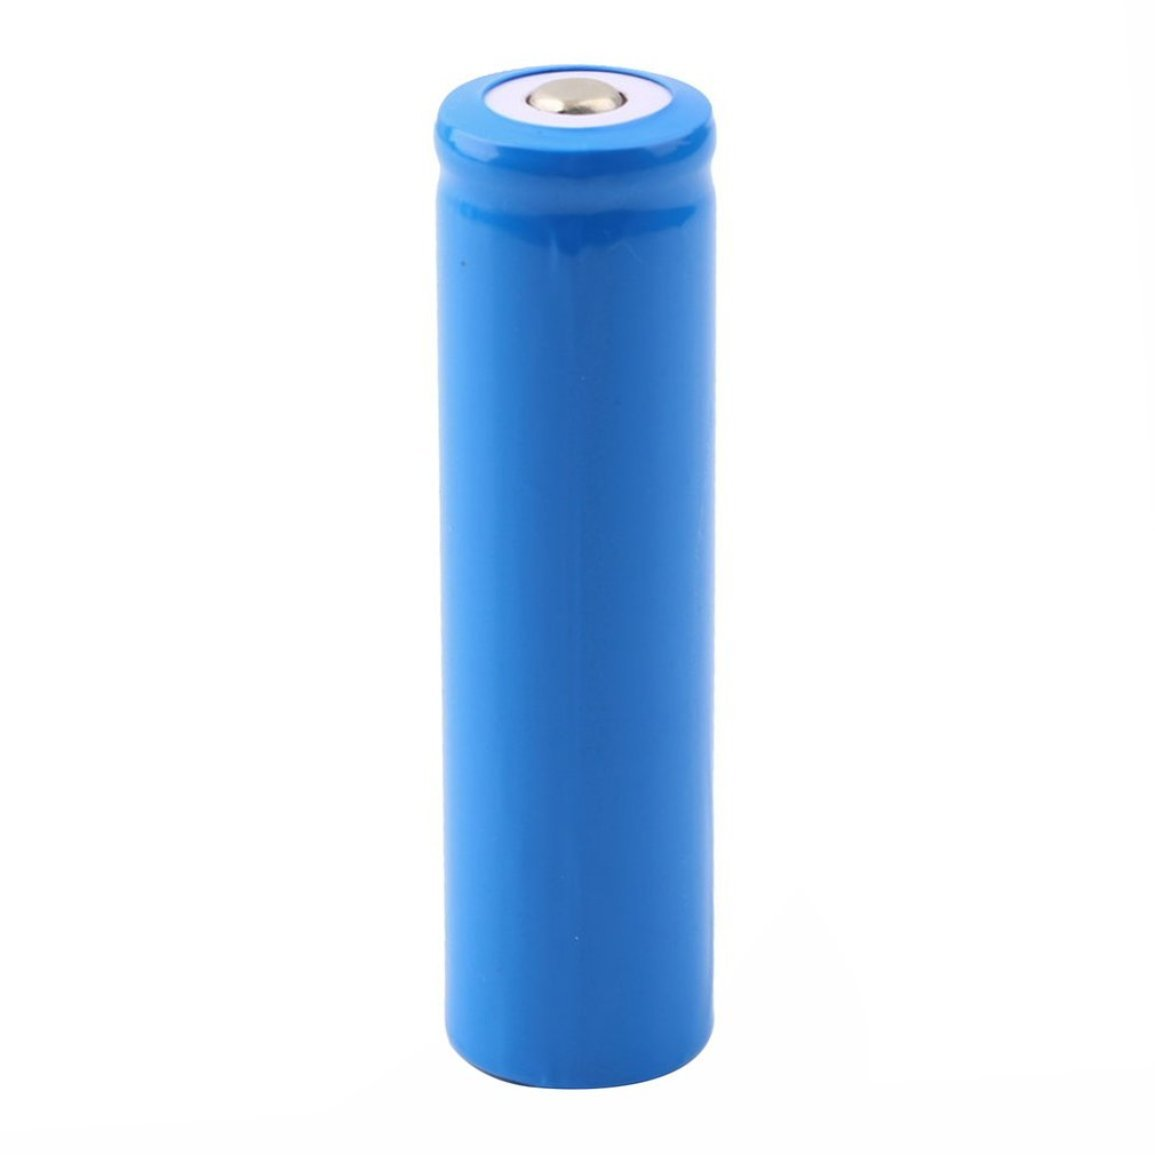 18650 Li-ion 5000mAh 3.7V Rechargeable Battery for LED Torch Flashlight Fantasyworld